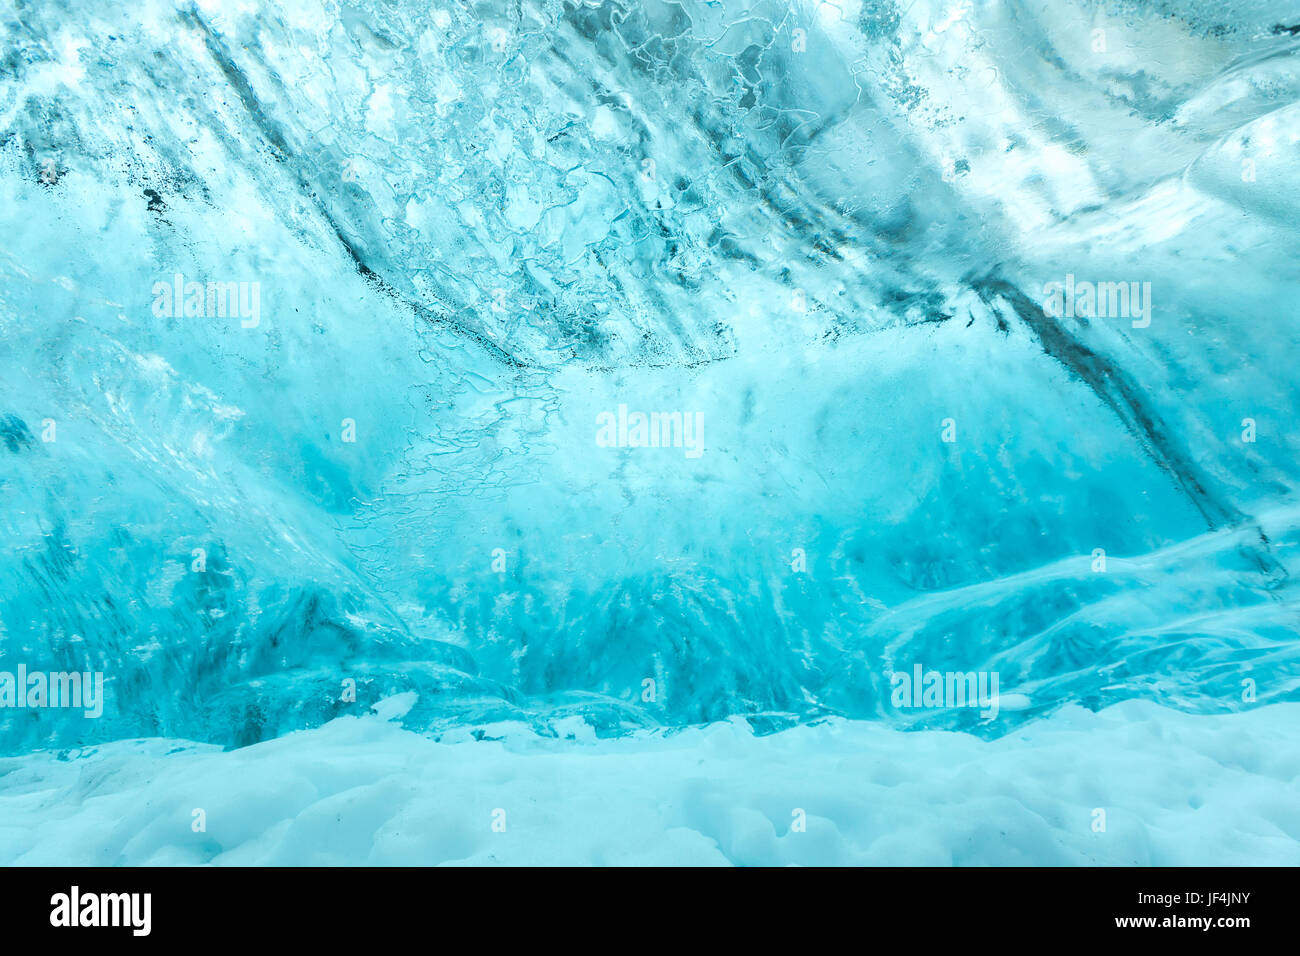 Ice wall texture - Stock Image